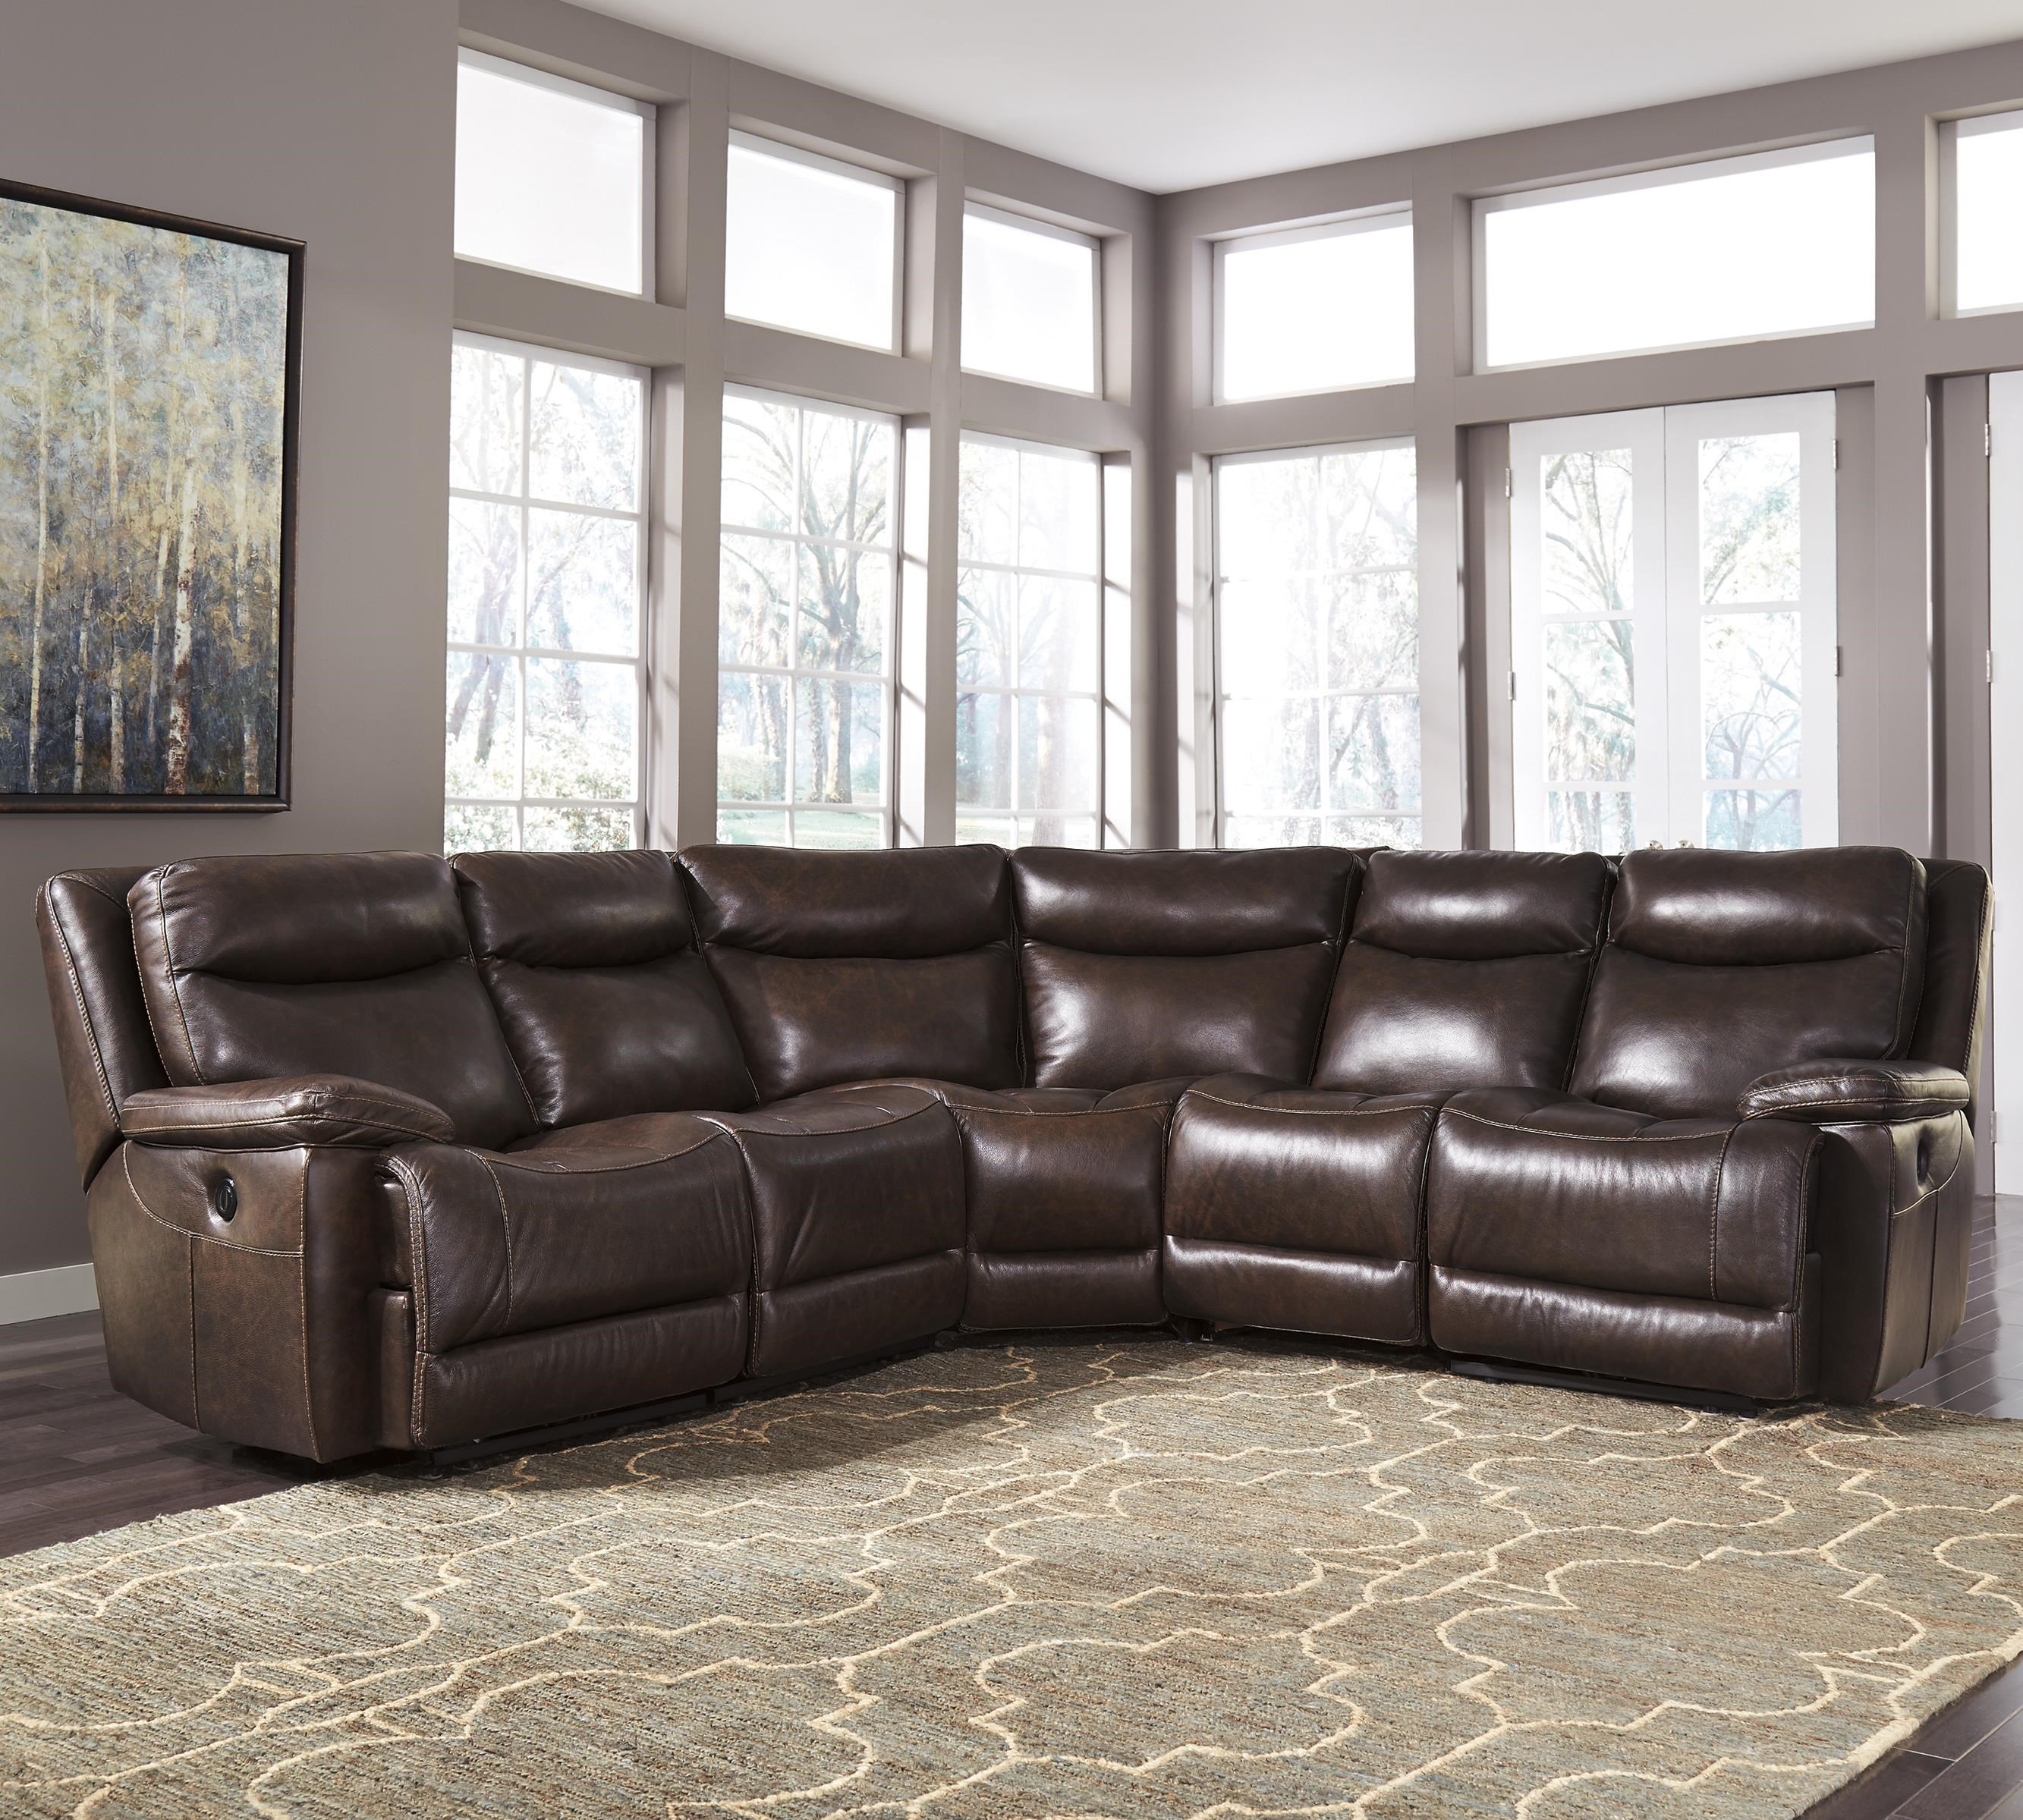 Signature Design by Ashley Zaiden Contemporary Leather Match Power Reclining Sectional : reclining sectional leather - Sectionals, Sofas & Couches